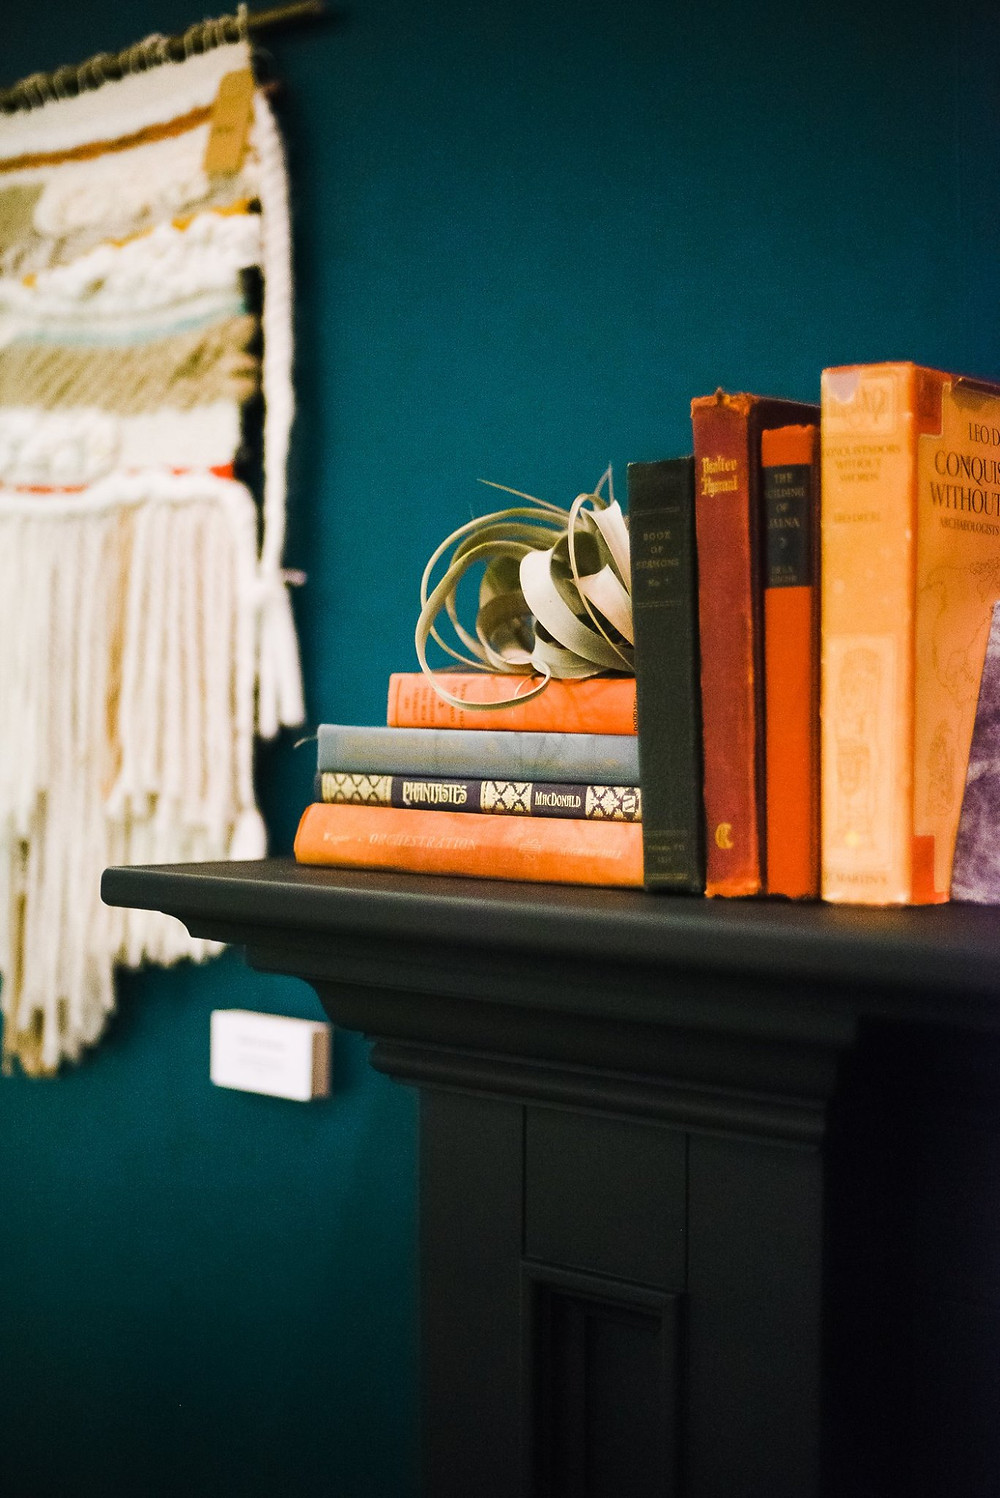 Books beautifying a mantel in a space by Lauren Figueroa.